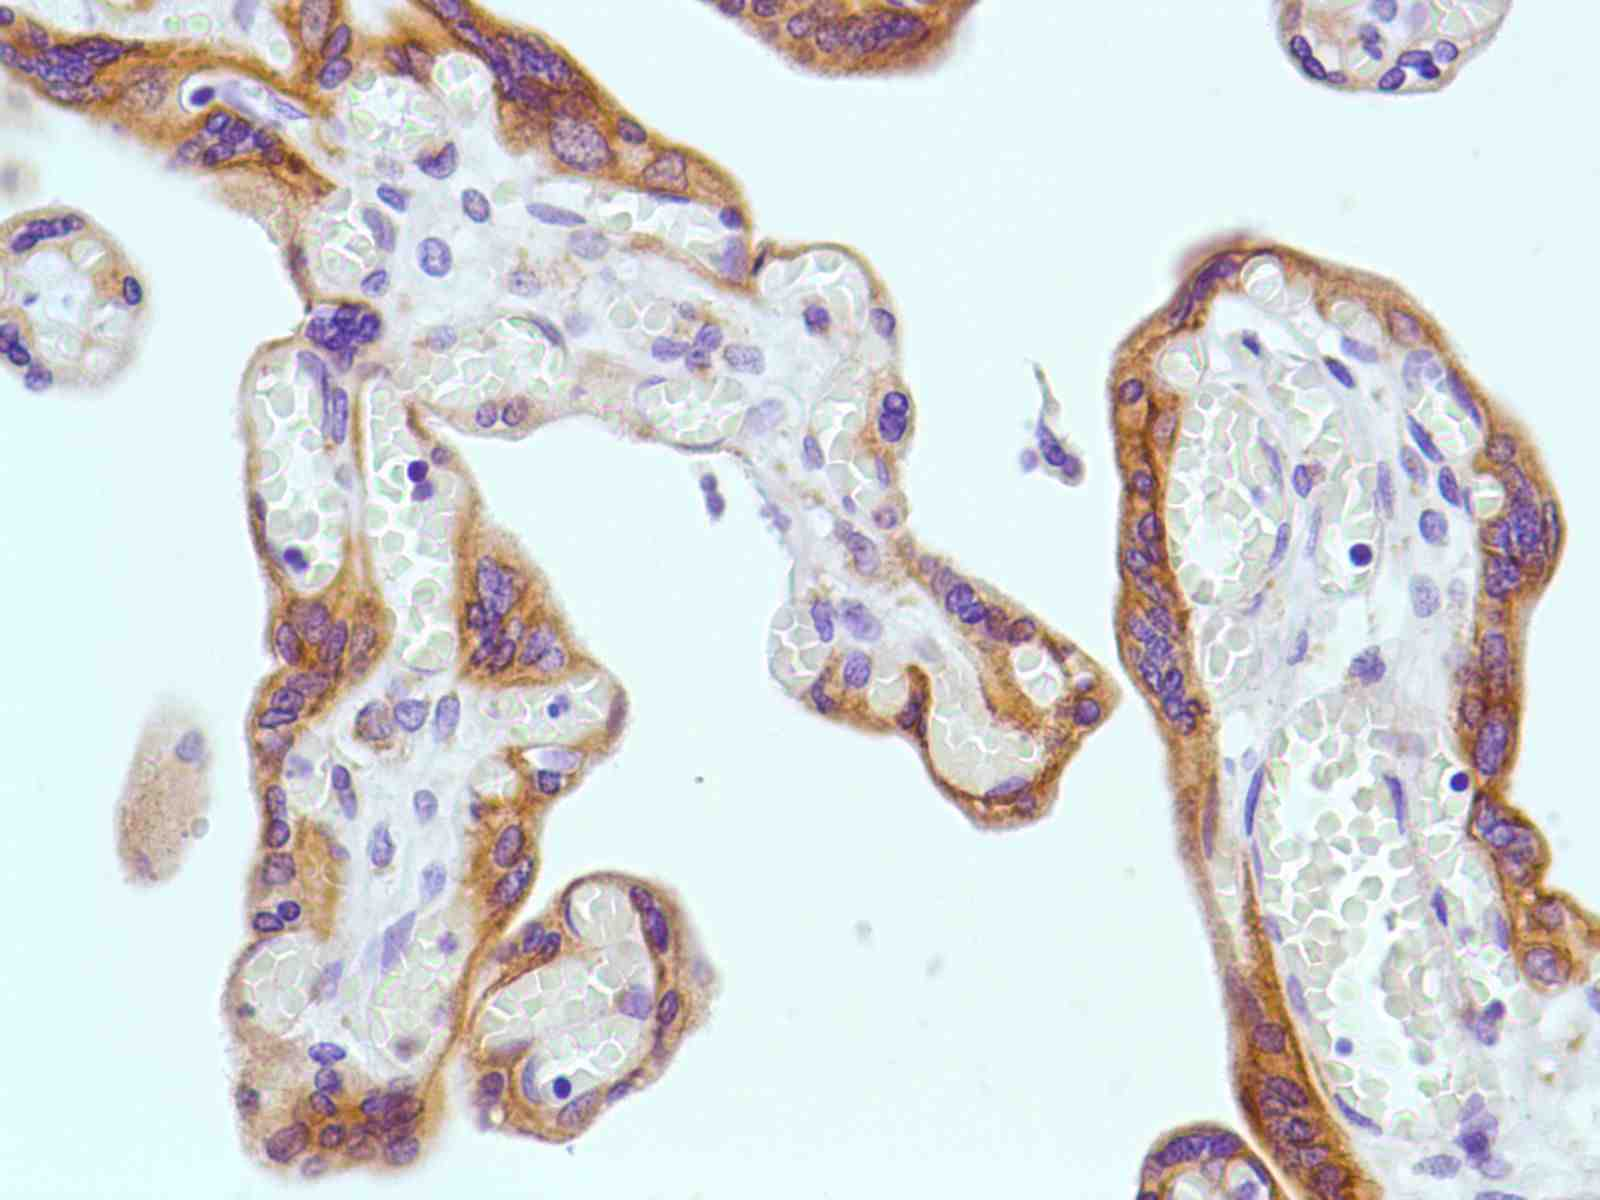 Human Placenta stained with anti-Keratin 6 antibody